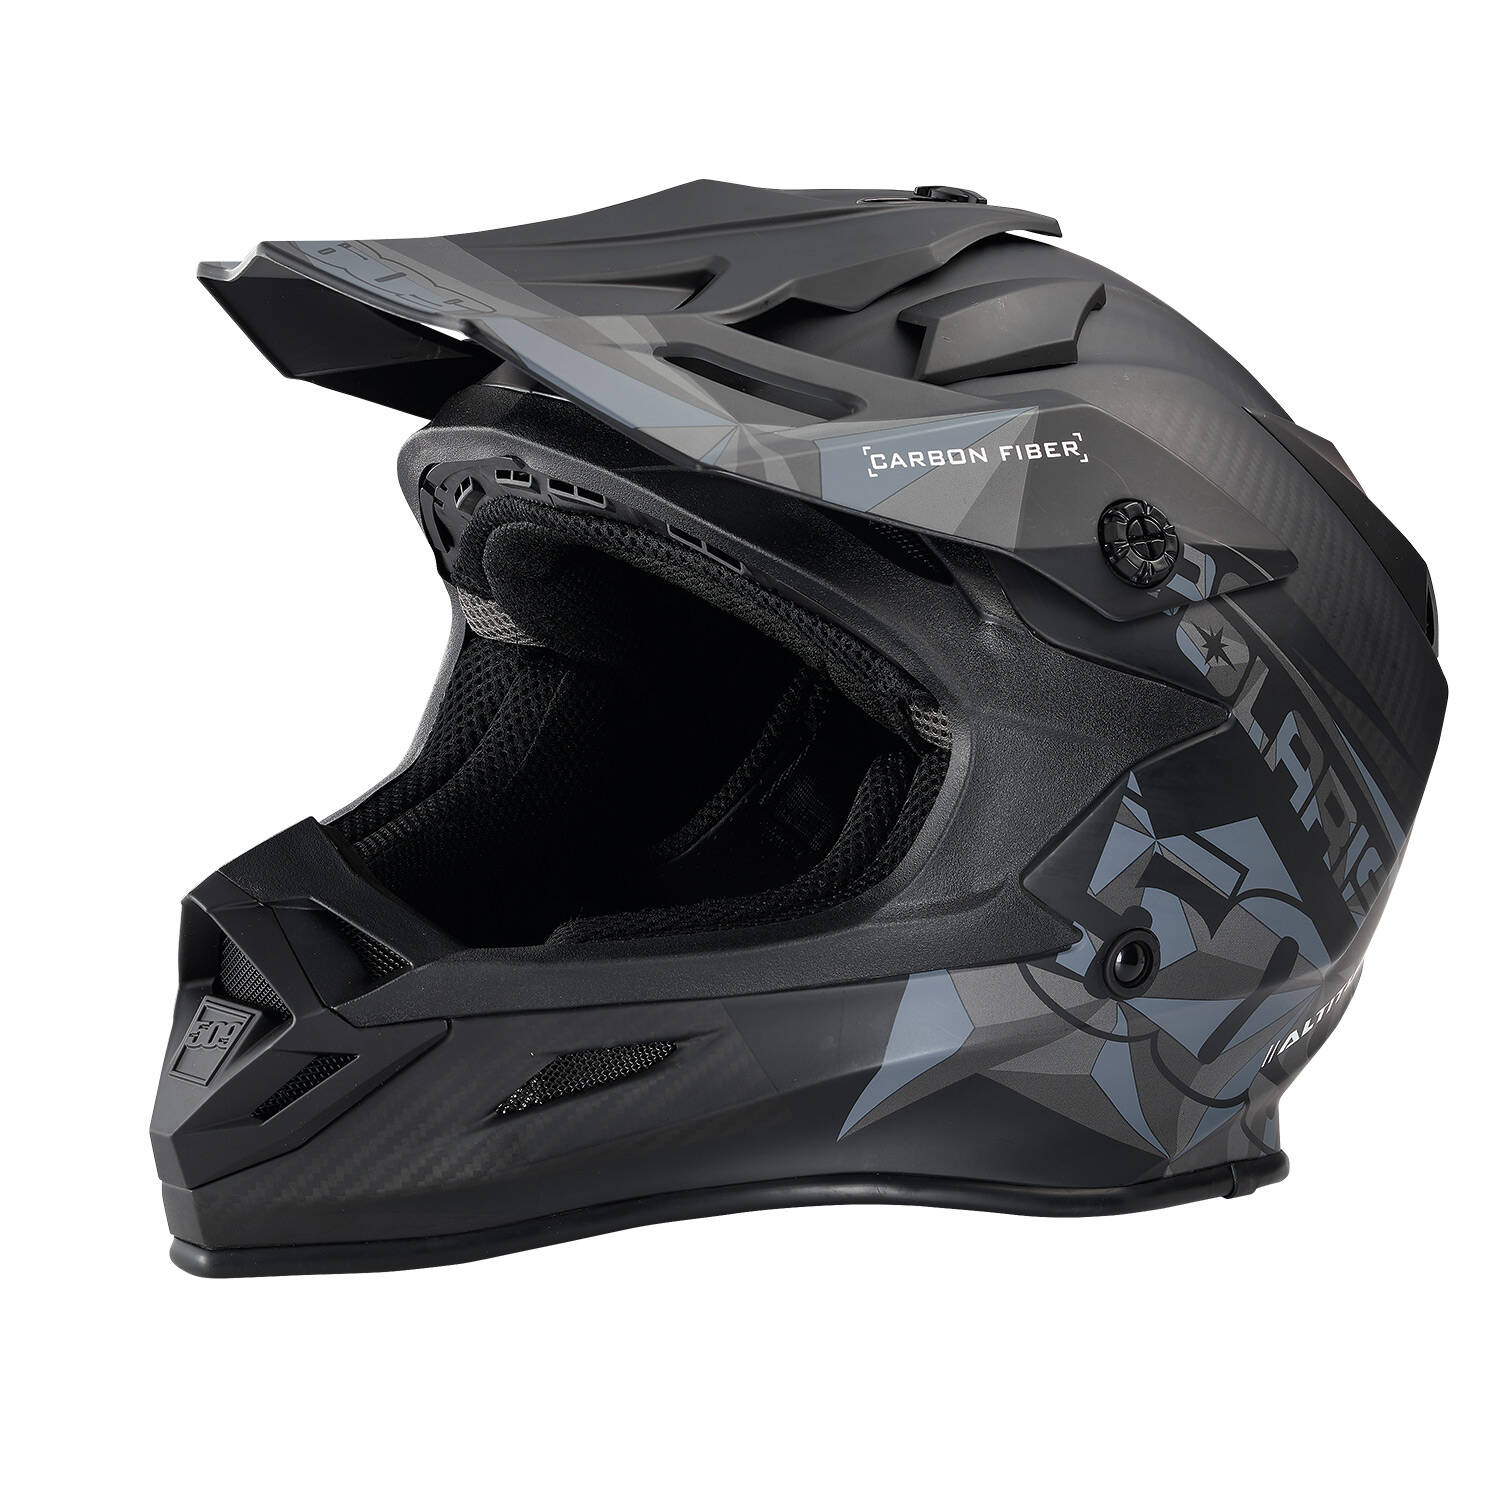 509® Altitude Adult Moto Helmet with Camera Mount, Matte Black Carbon